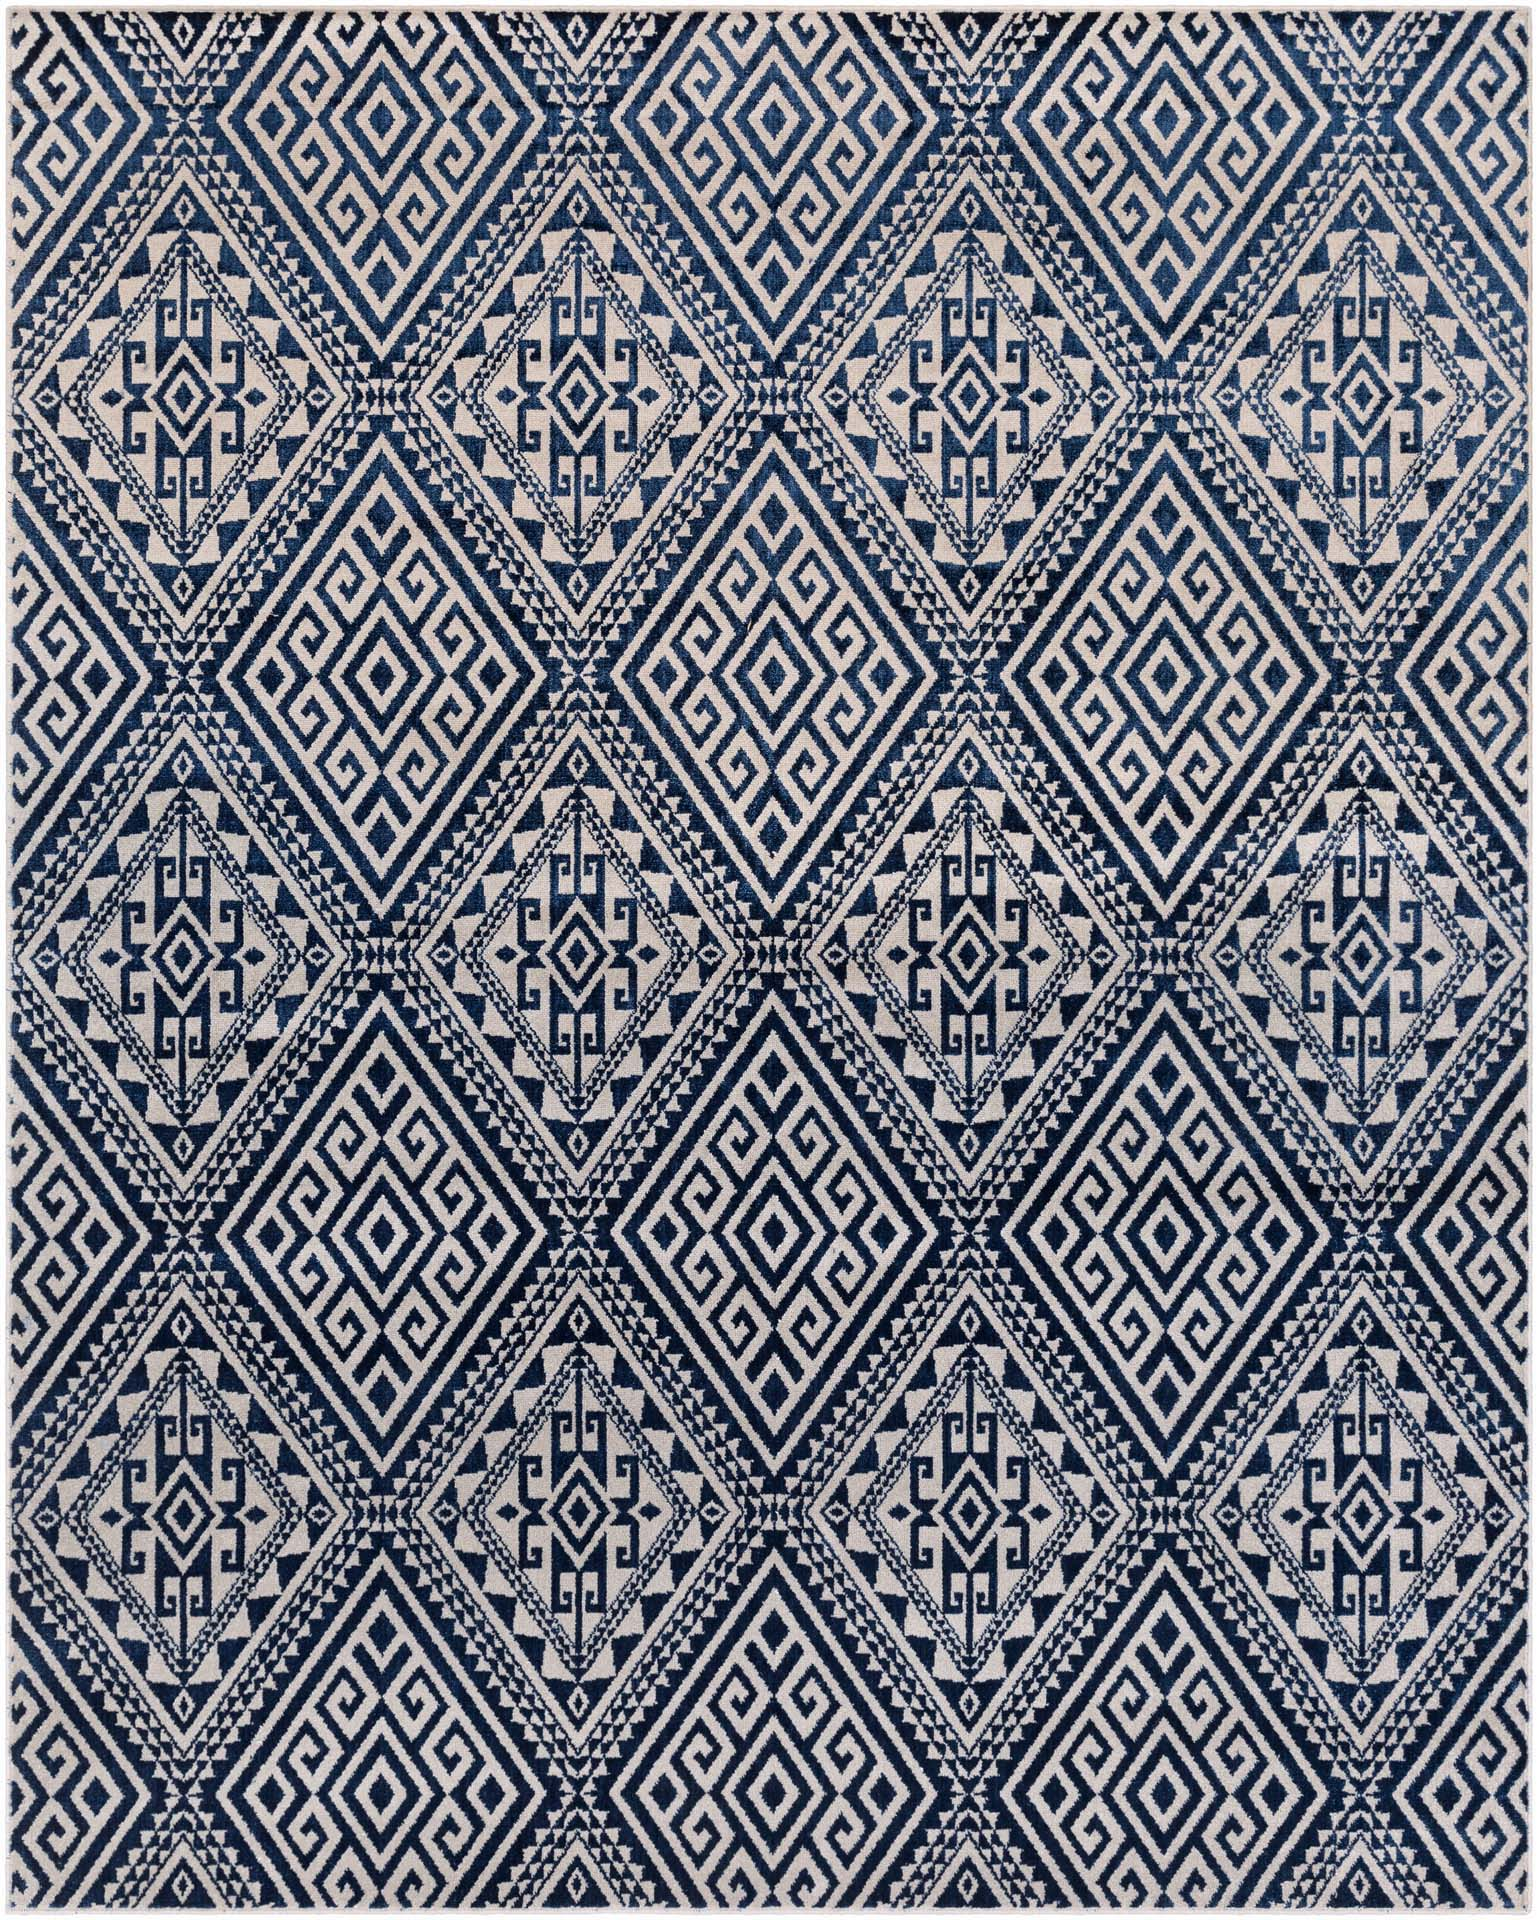 Polyester wool blend Surya Stretto rug comes in a violet and gray diamond tribal pattern in a durable long lasting material that is easy to maintain.